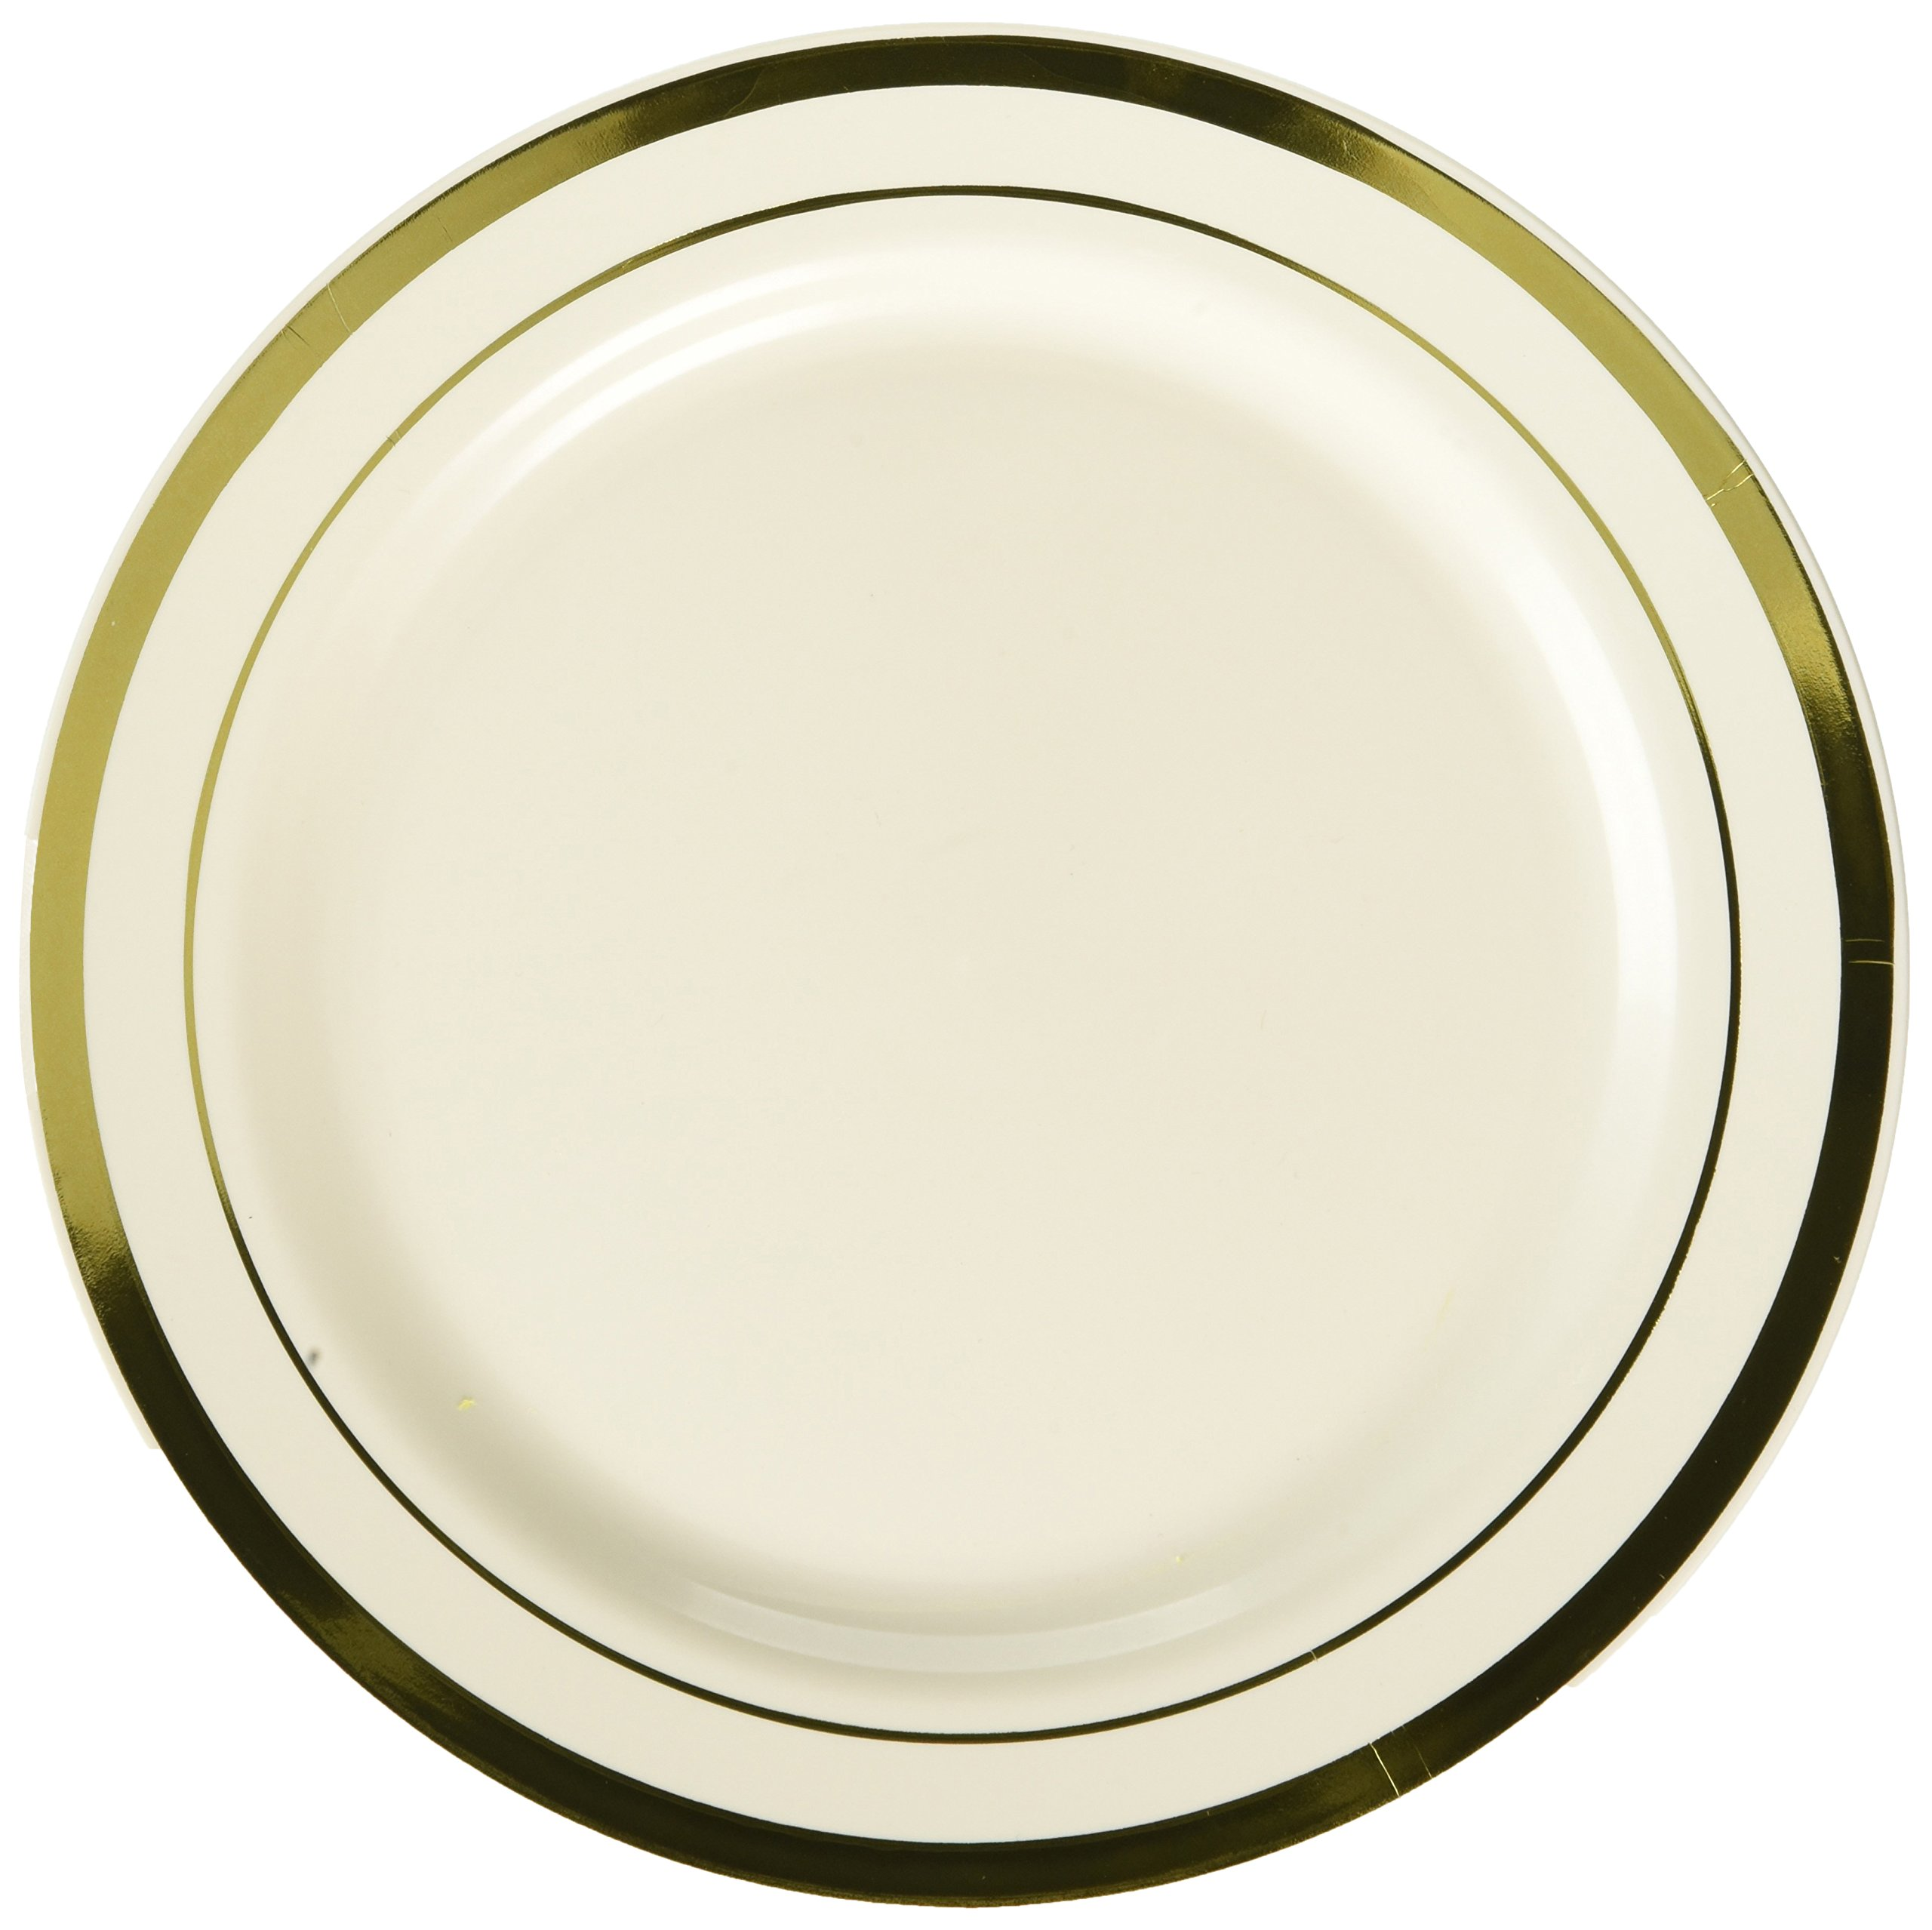 Amscan Elegant Premium Plastic Round & Reusable Dishware Cream with Gold Trim 7'' Pack Party Supplies (120 Piece), 7 1/2'' 20 Ct by Amscan